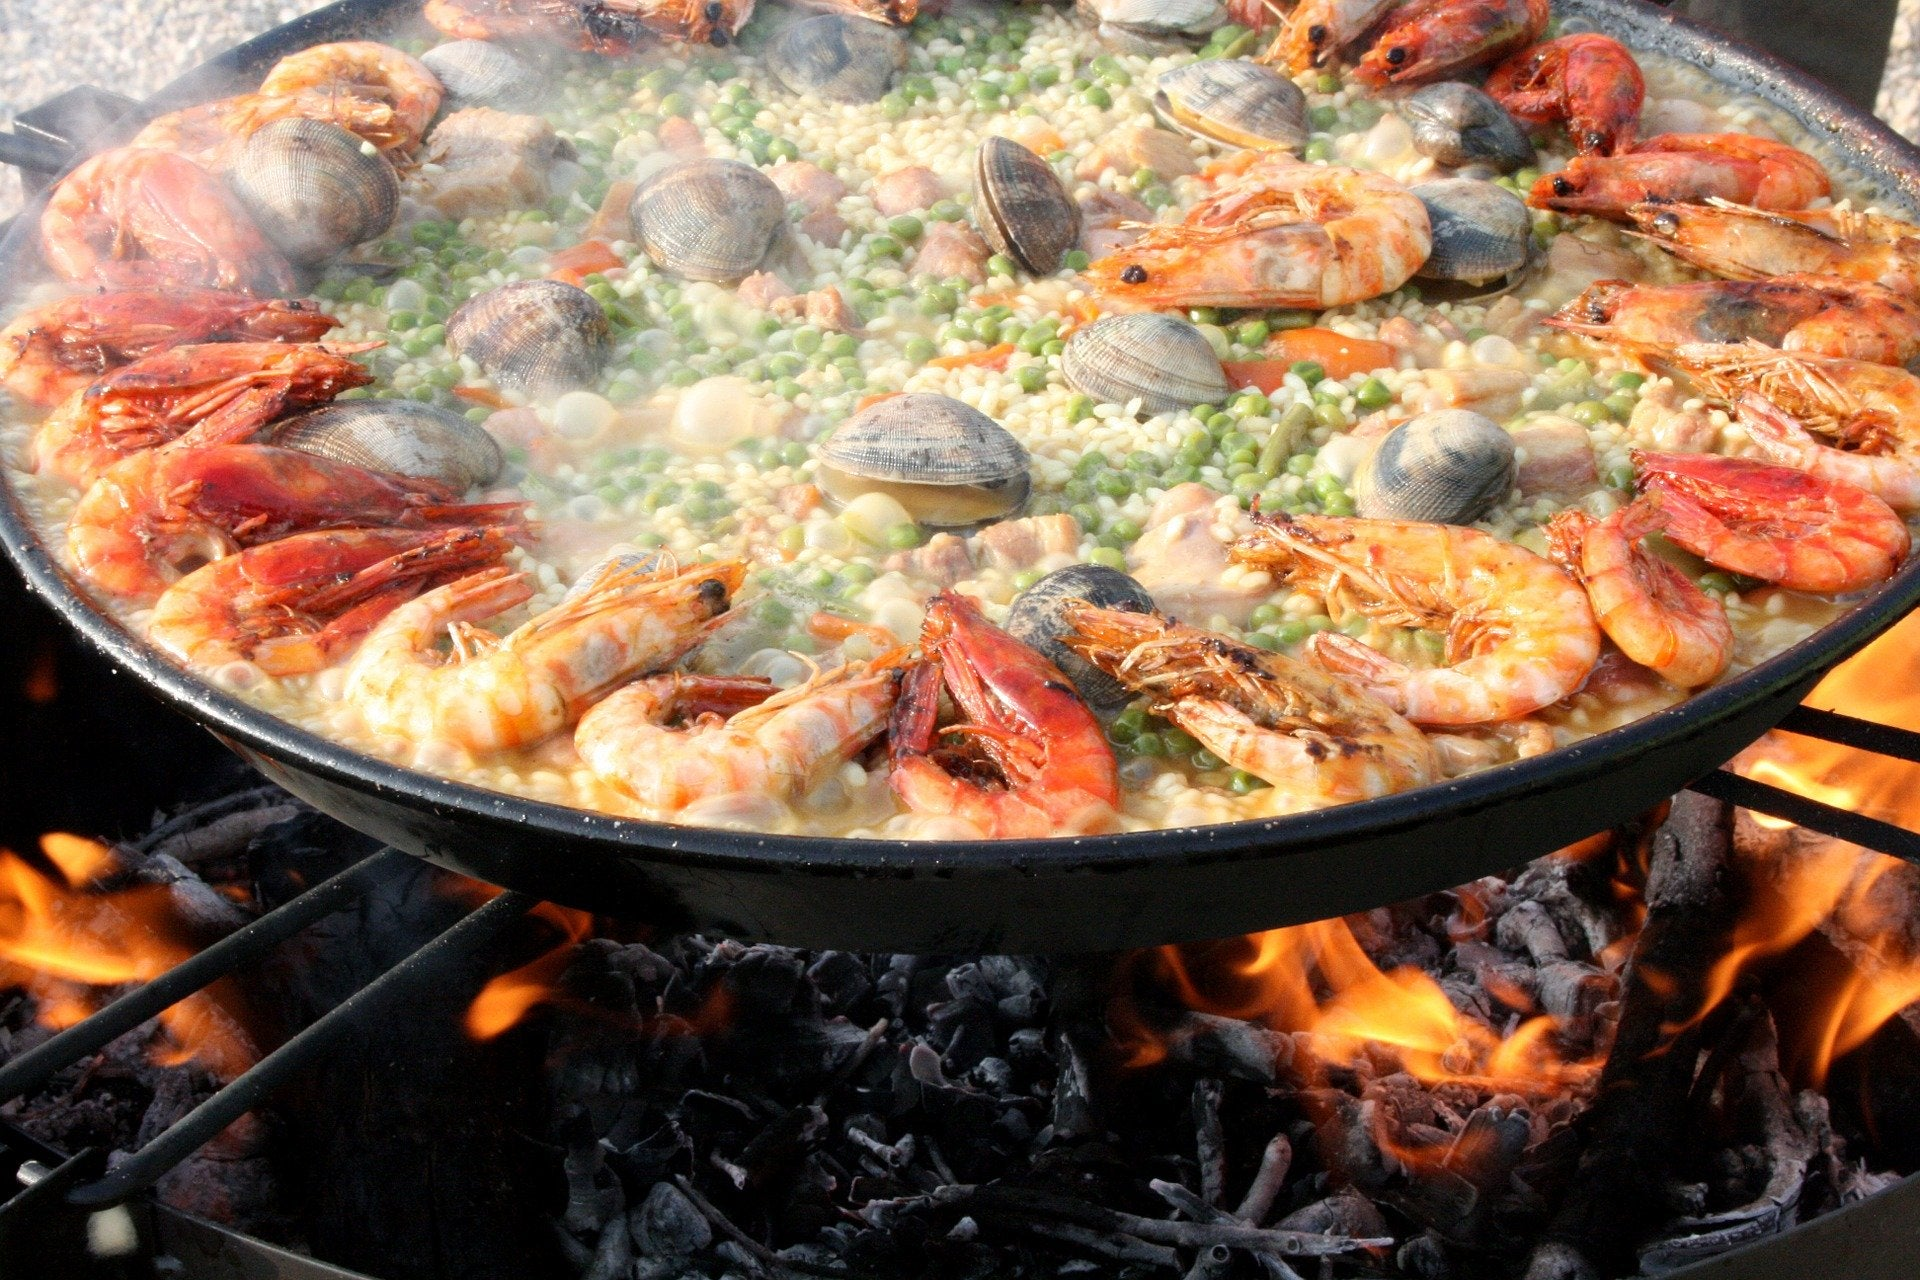 TT Strange Times - A Staycation Summer - Yum! A traditionally pan-cooked paella...